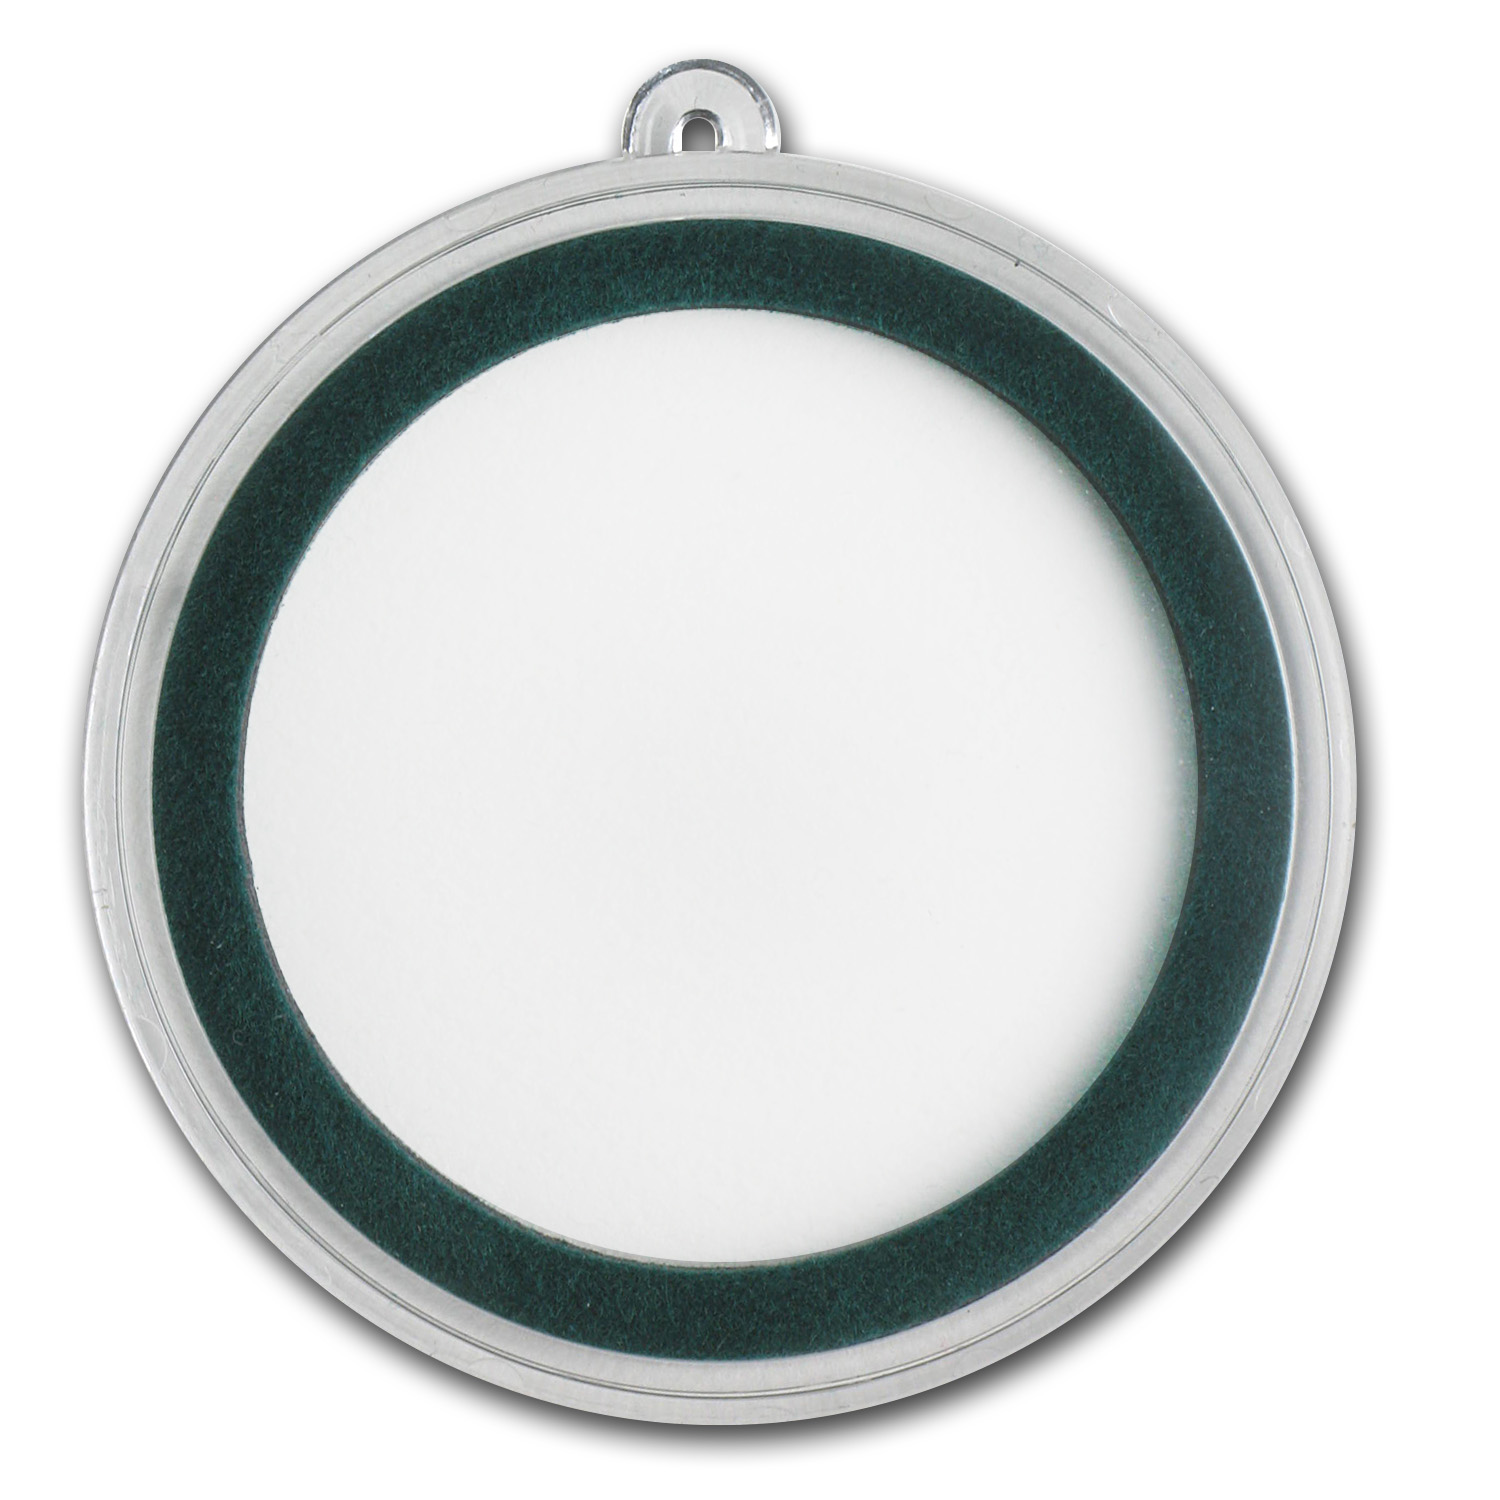 Ornament Capsule for Silver Rounds - 39mm (Green Ring)